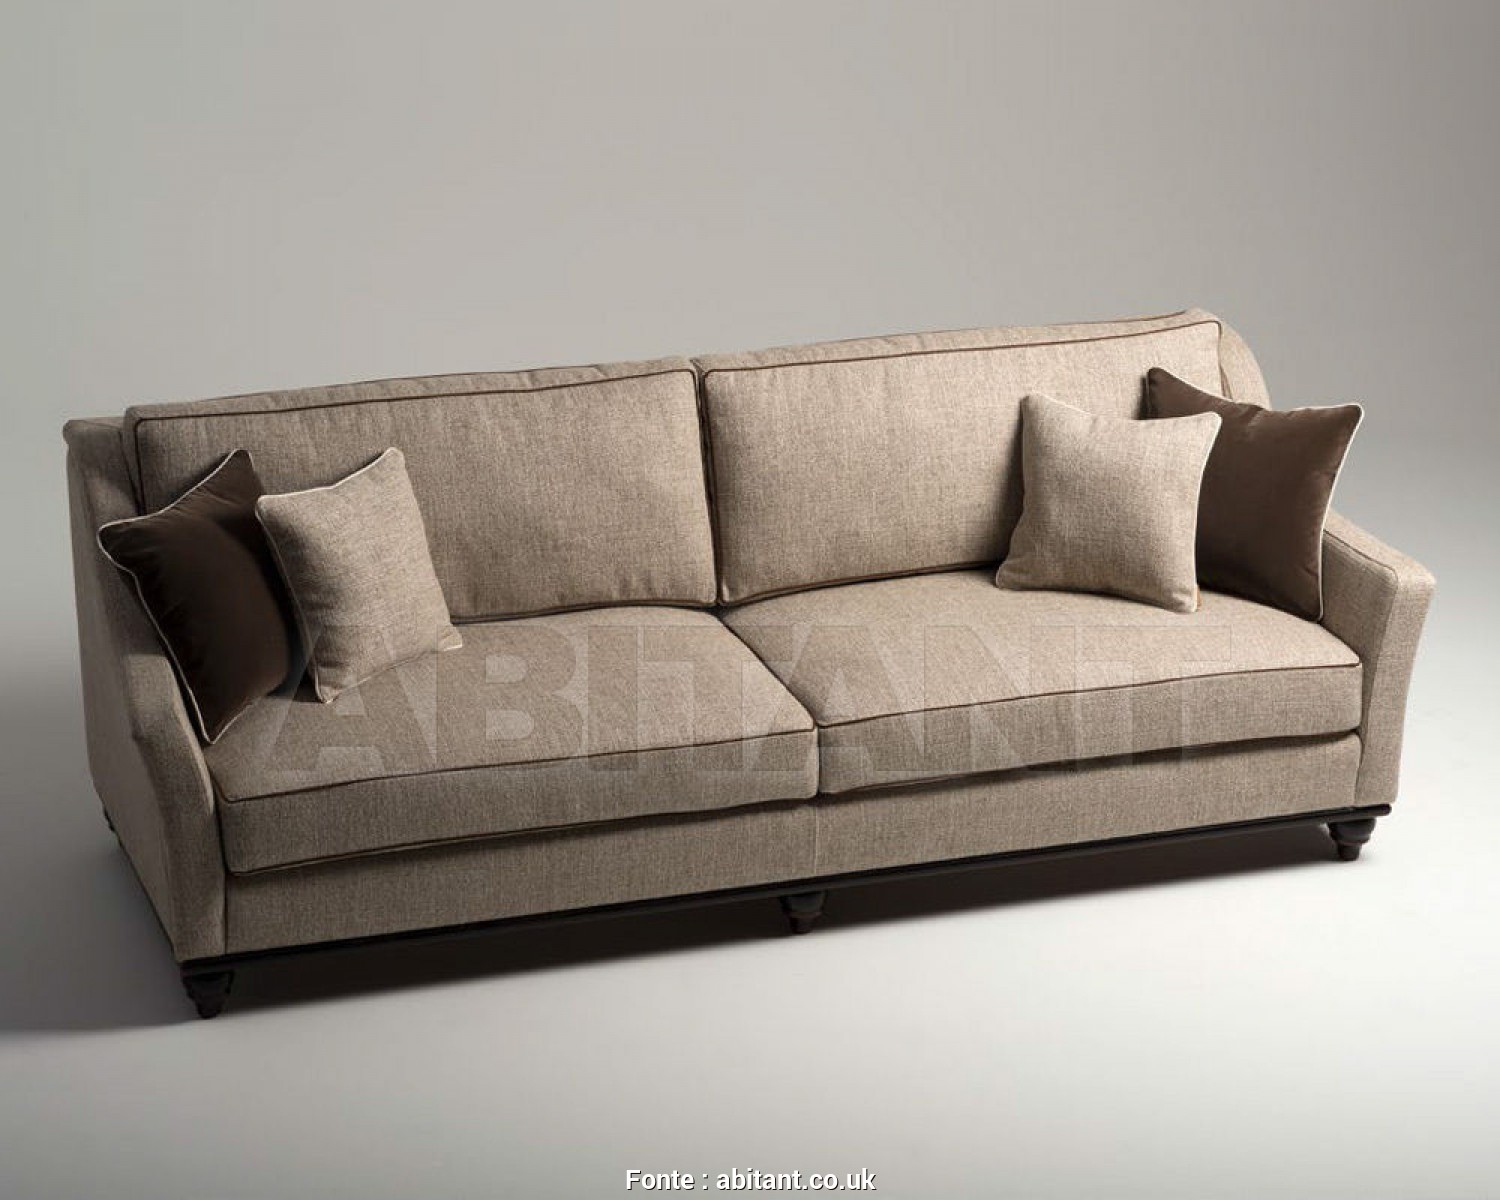 Divano 3 Posti Sofa, Deale Sofa Light Beige Mantellassi DUCALE Divano 3 Posti, : Buy, Оrder